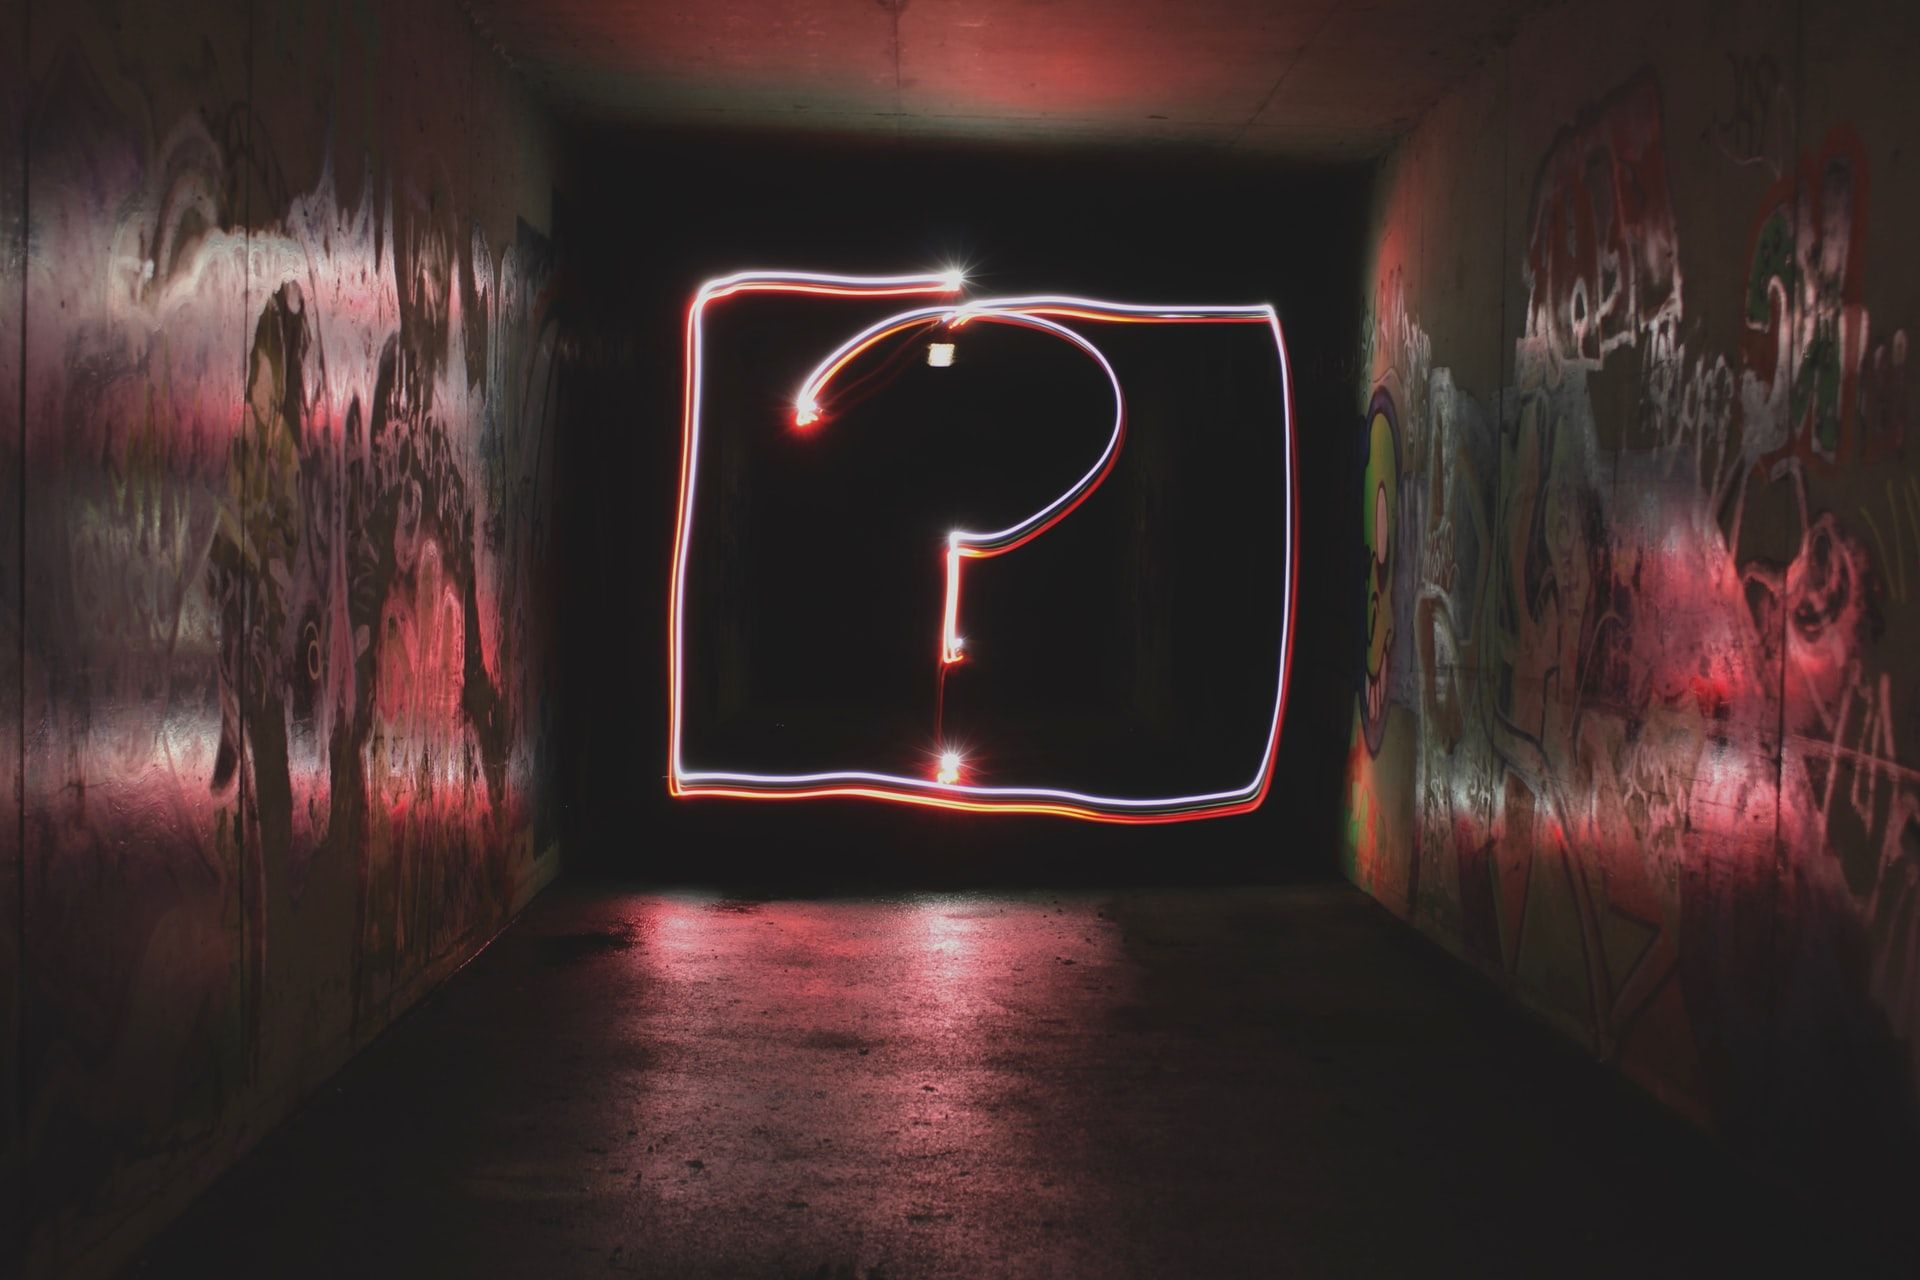 Looking down a dark tunnel at night. At the end of a tunnel is a person waving a glow stick in the form of a question mark.